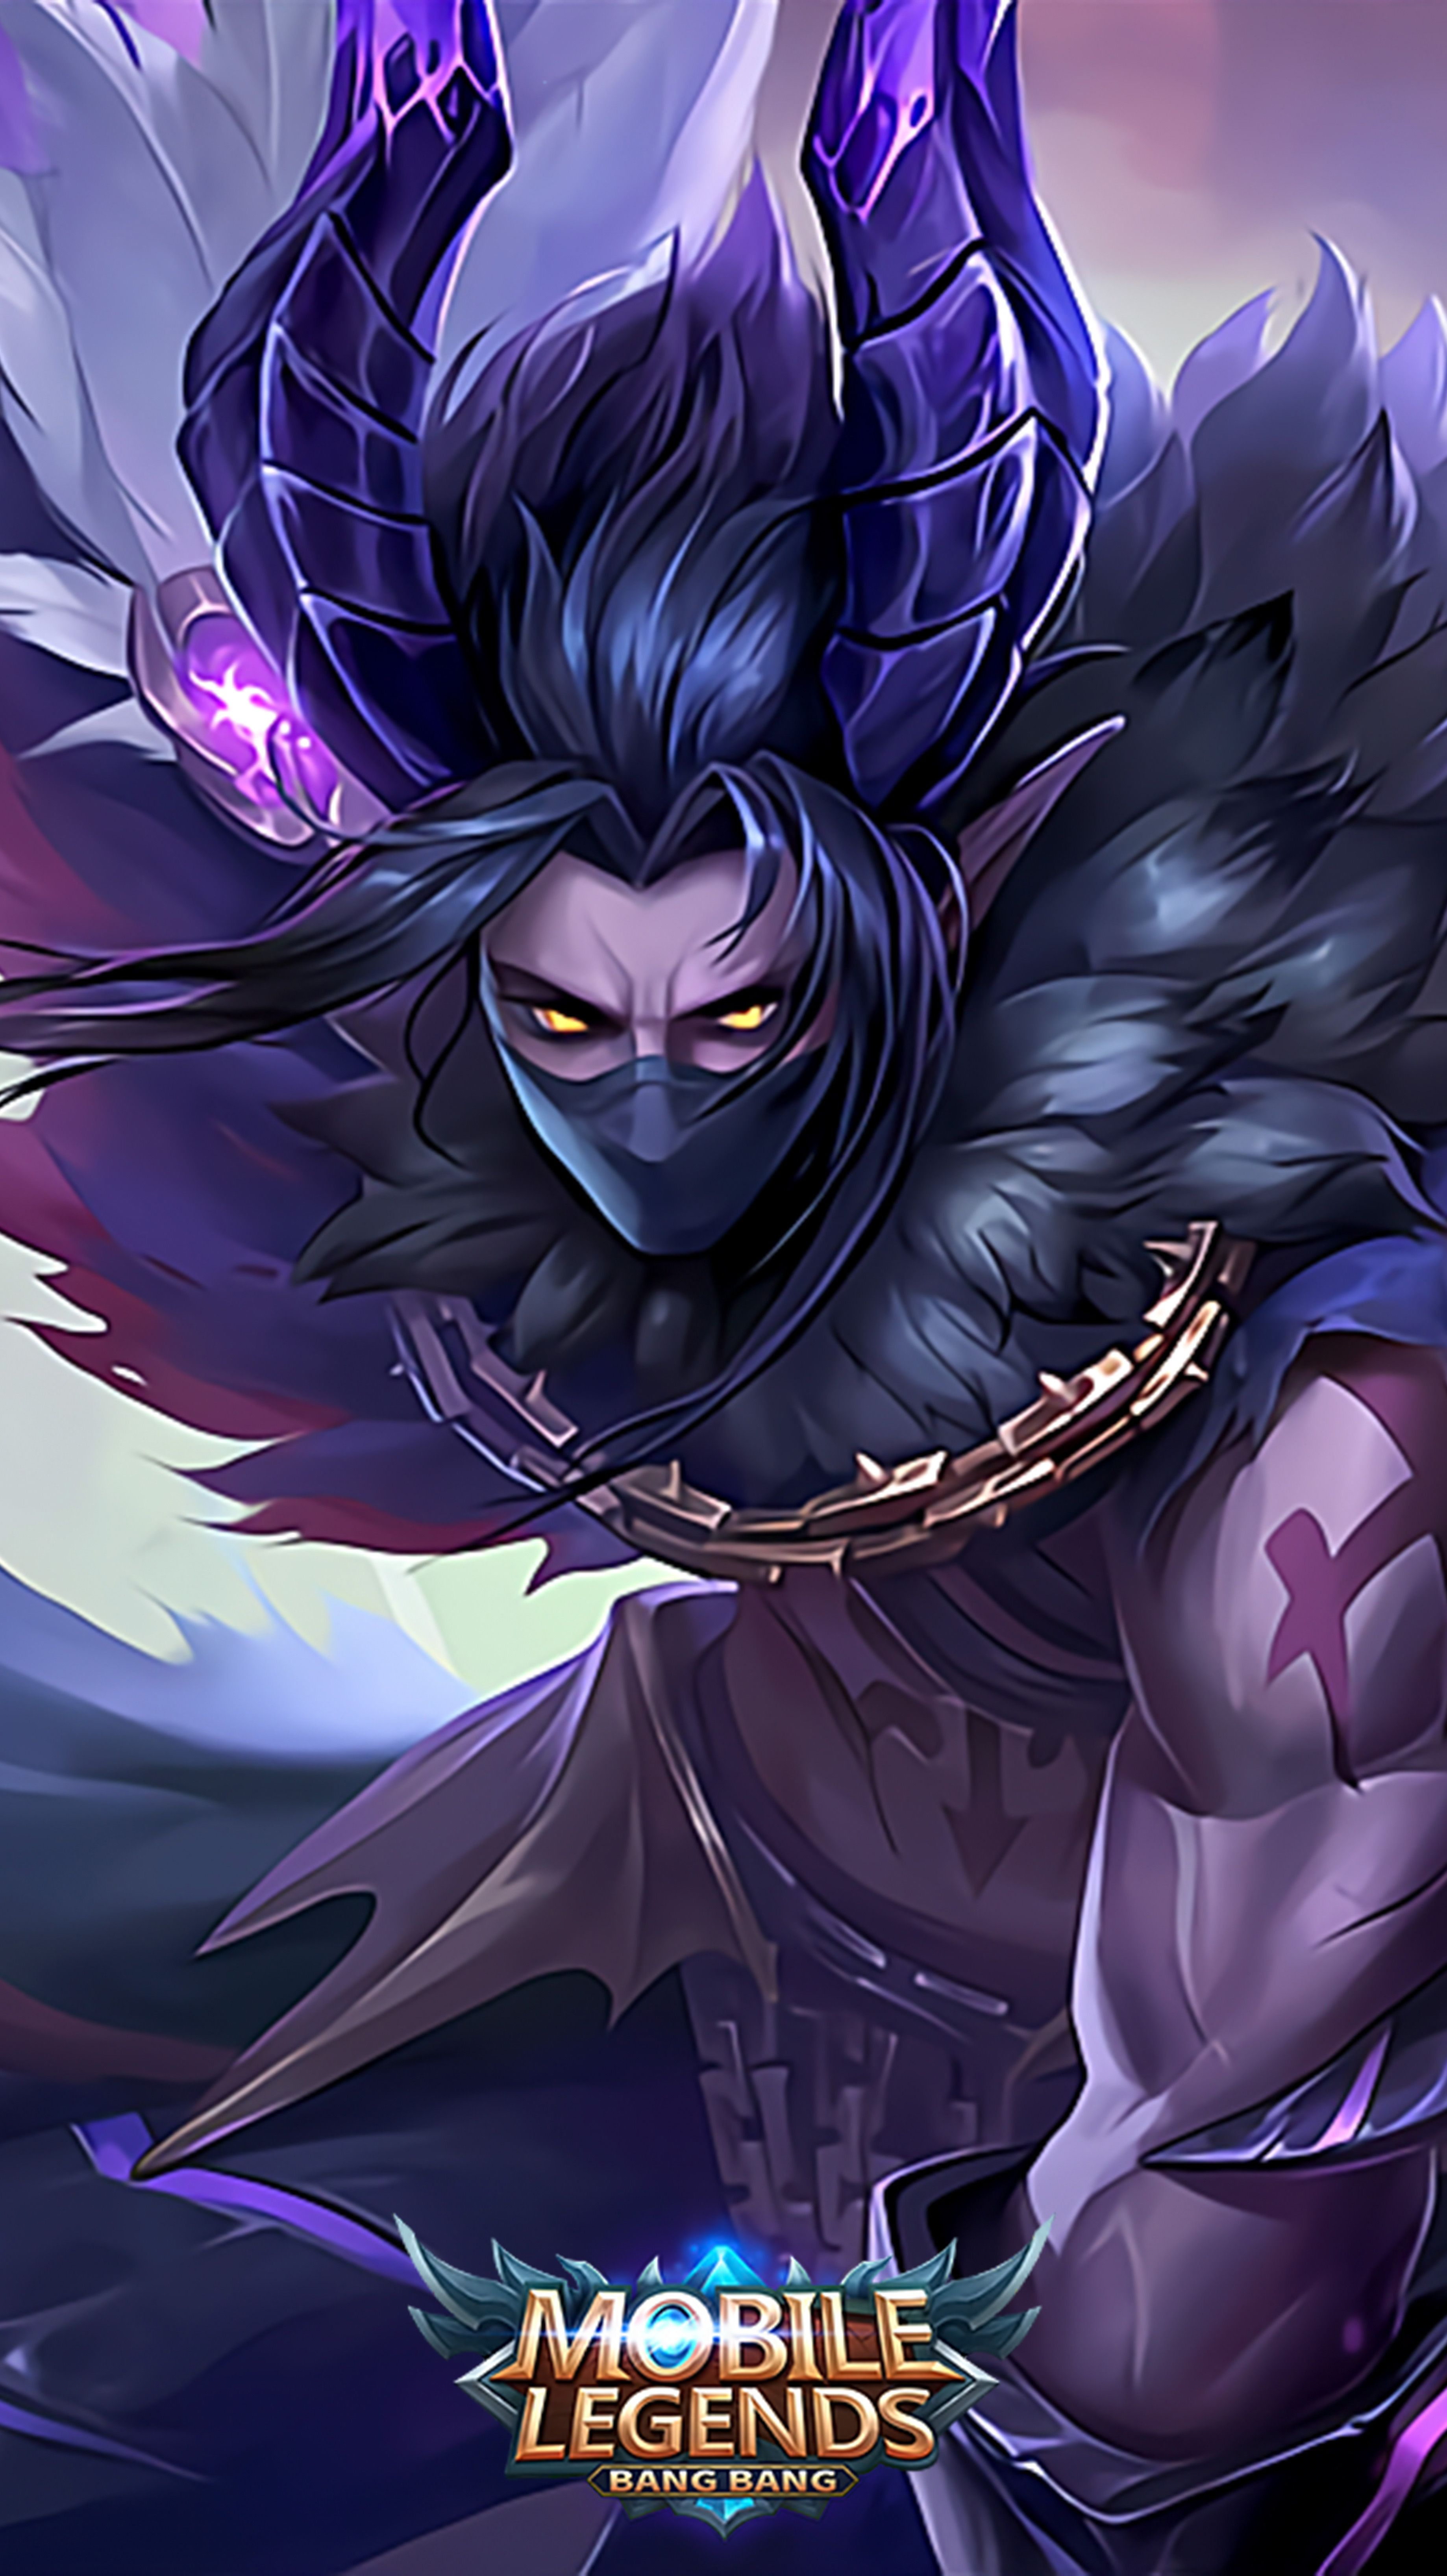 Pin By Marko Mestrovic On Fantasy Pinterest Mobile Legends